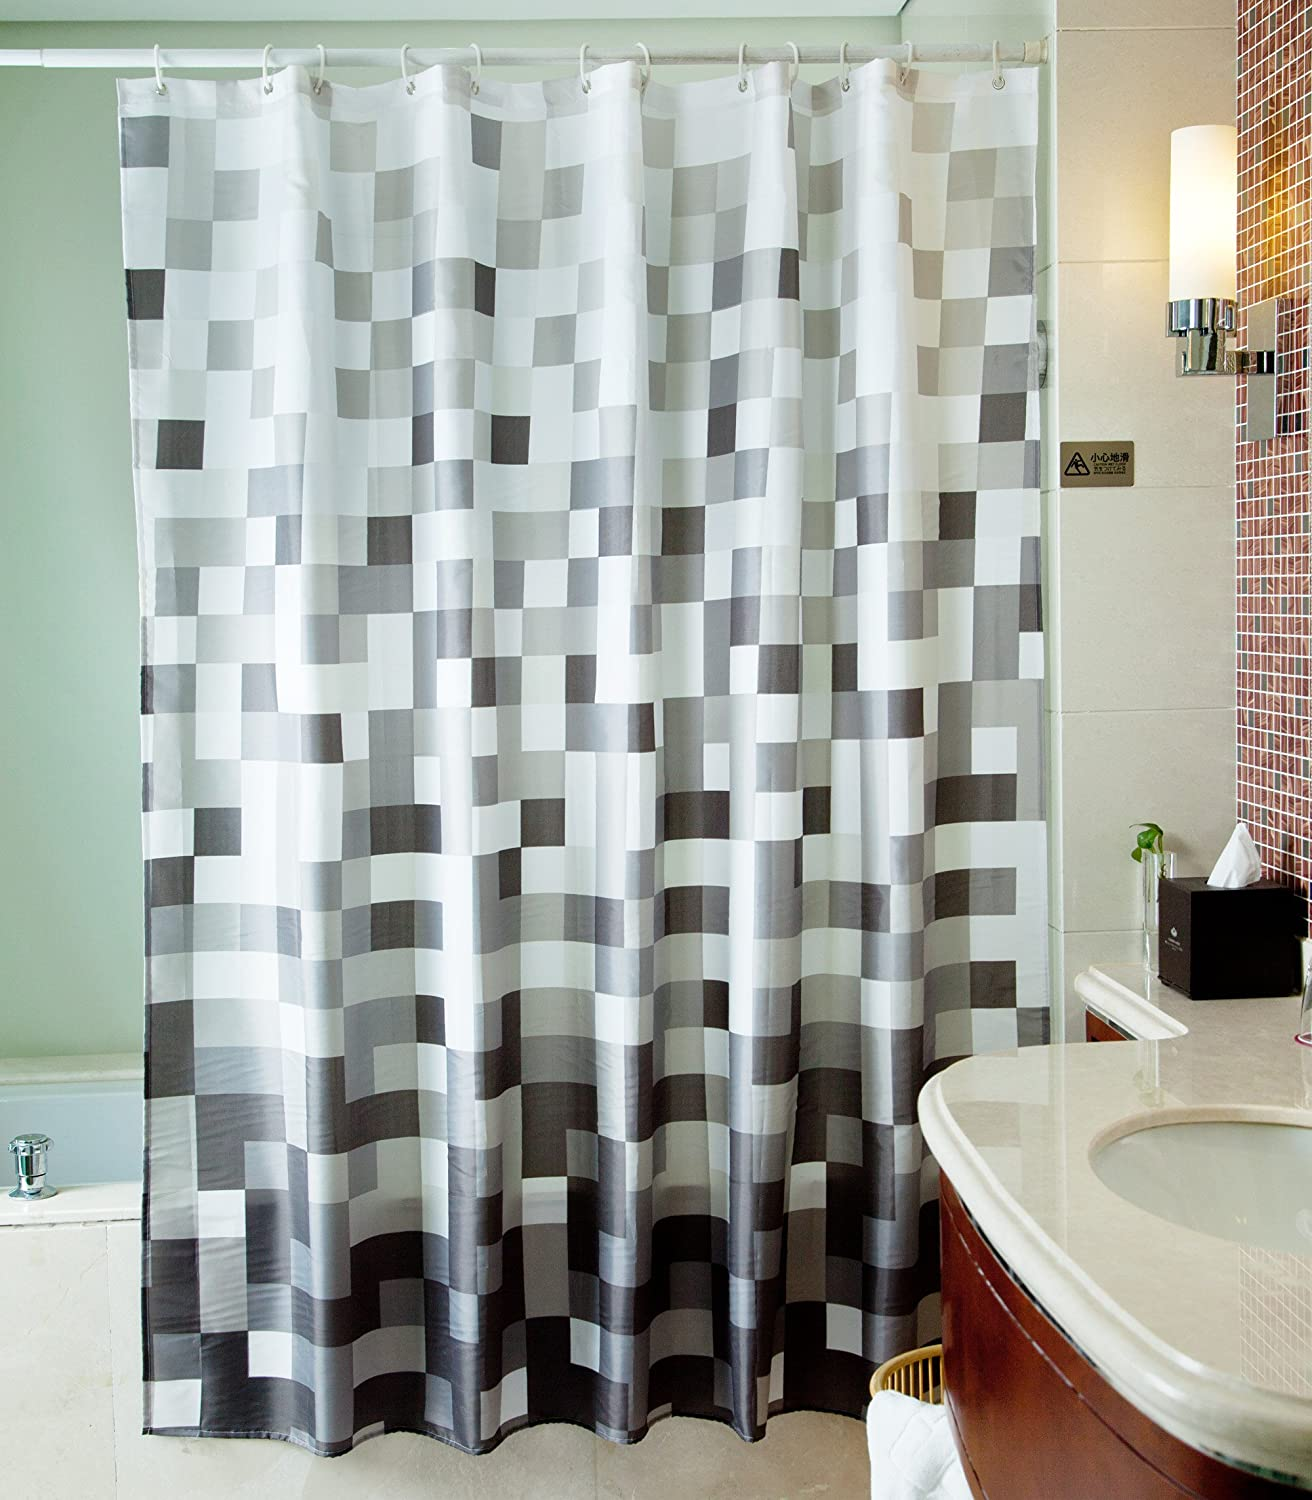 Delightful Amazon.com: Sfoothome Polyester Fabric Shower Curtain Waterproof/ No More  Mildews Bathroom Shower Curtains With Shower Cap (Gray Square 2): Home U0026  Kitchen